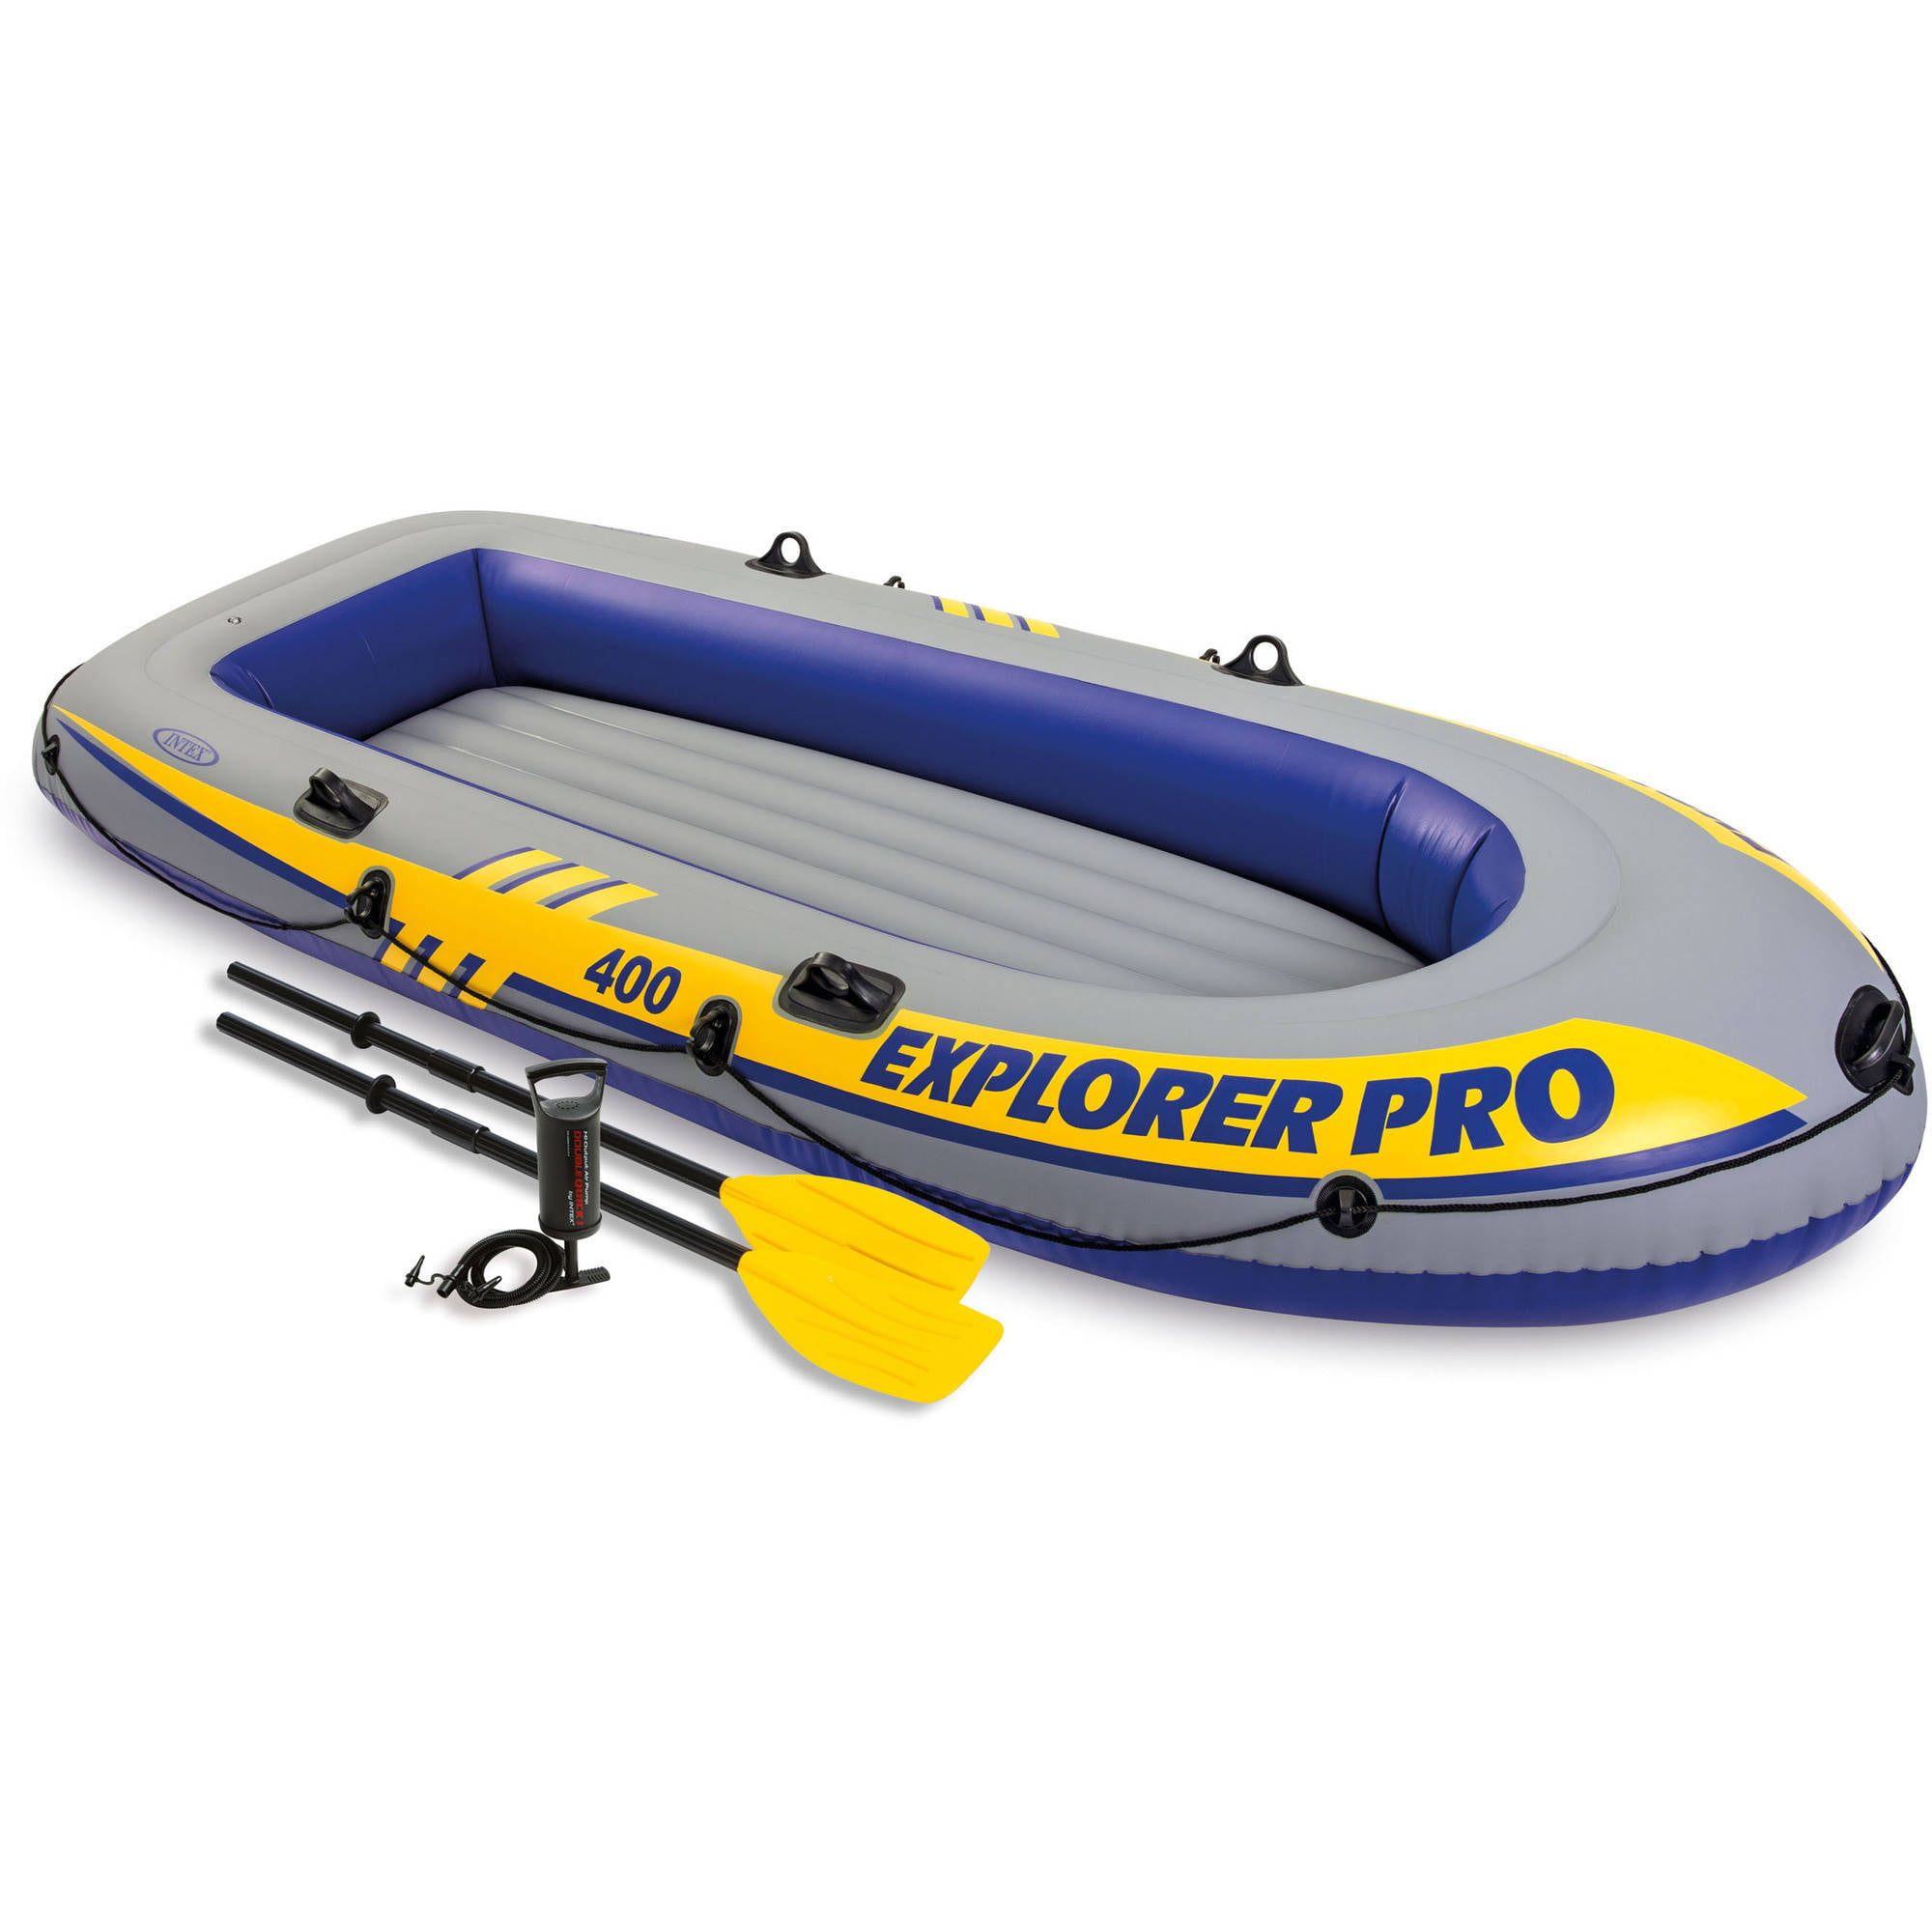 Intex Inflatable Explorer Pro 400 Four-Person Boat with Oars and Pump by Intex